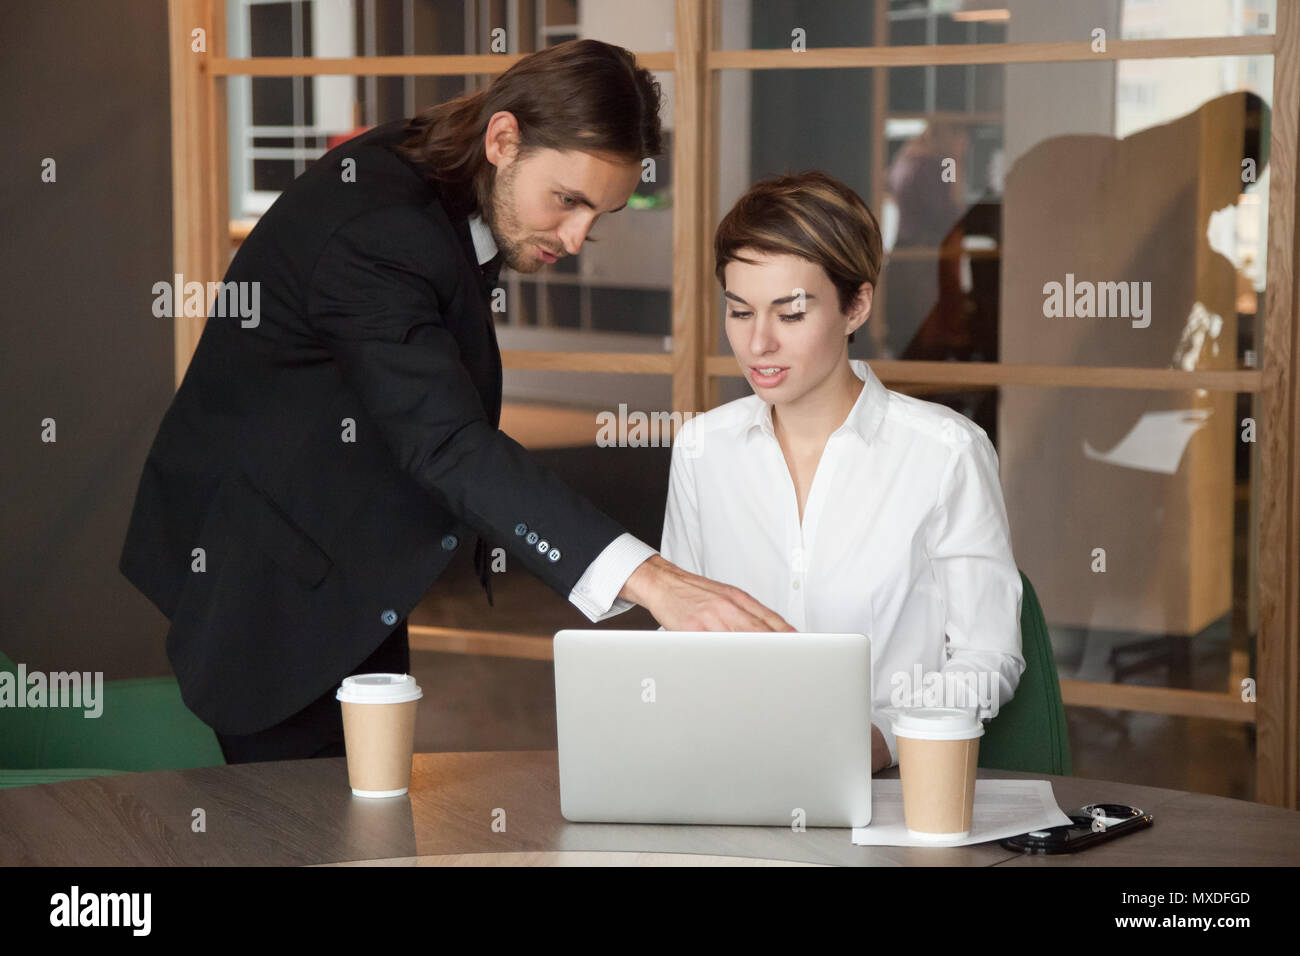 Male leader helping partner assisting with online startup - Stock Image